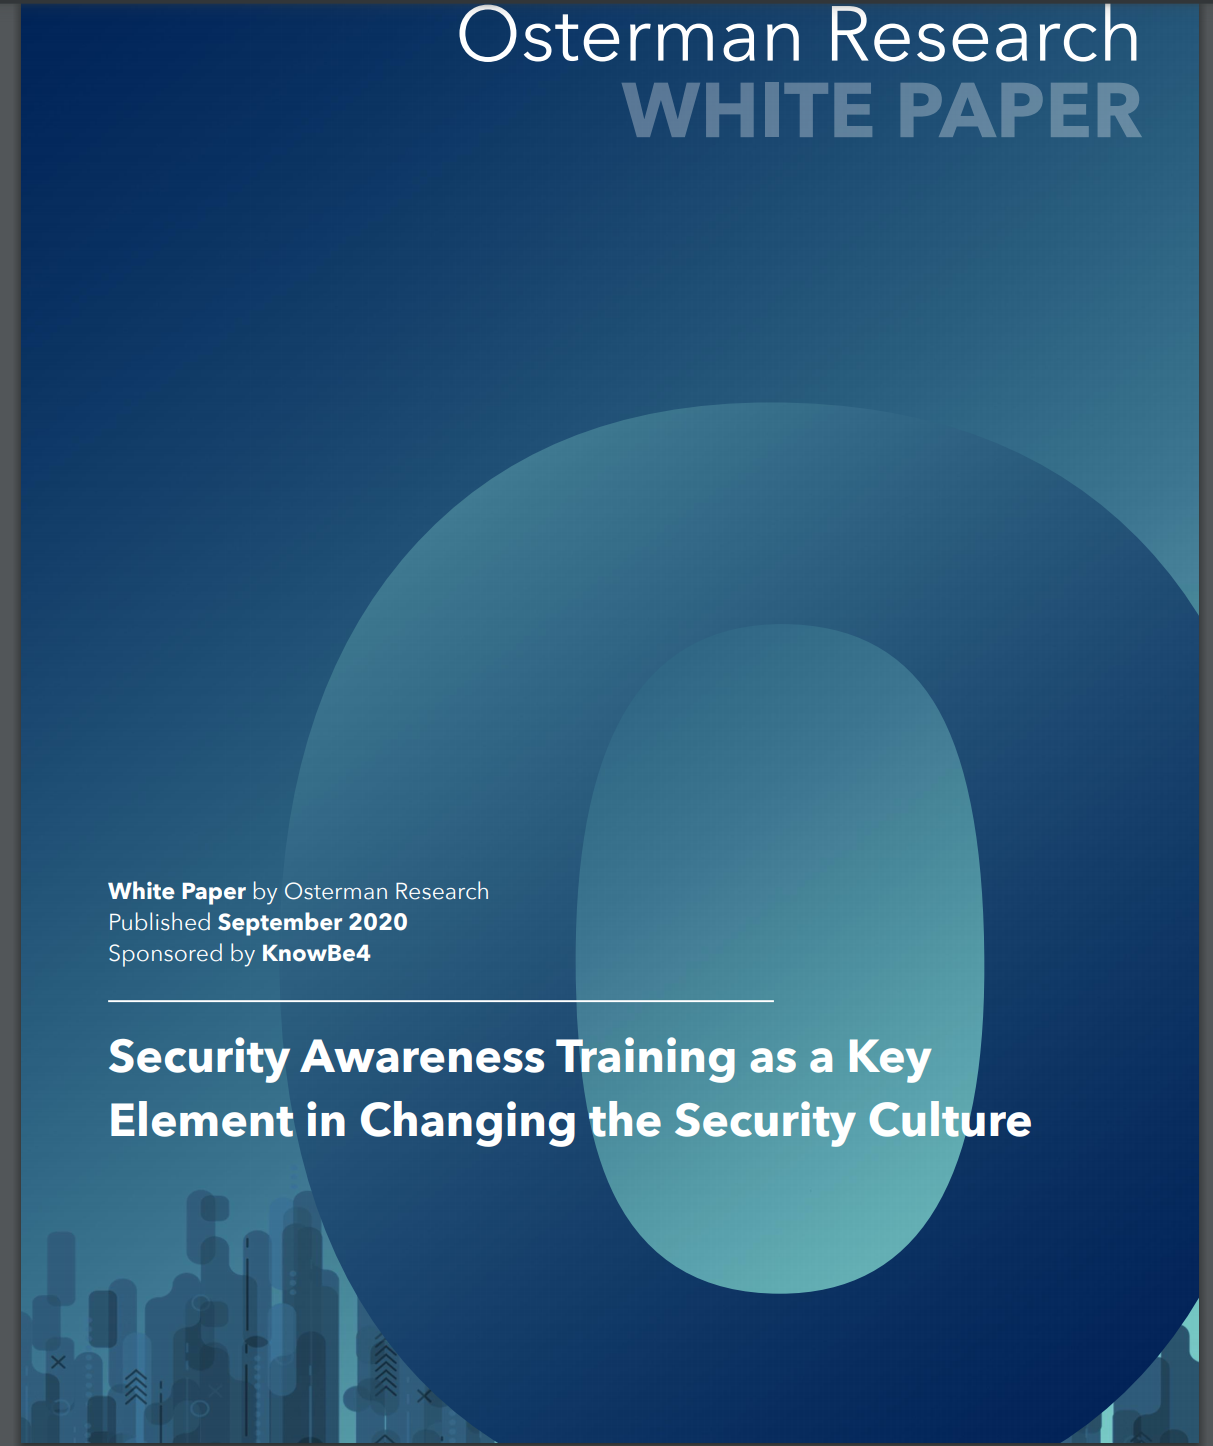 Security Awareness Training as a Key Element in Changing the Security Culture